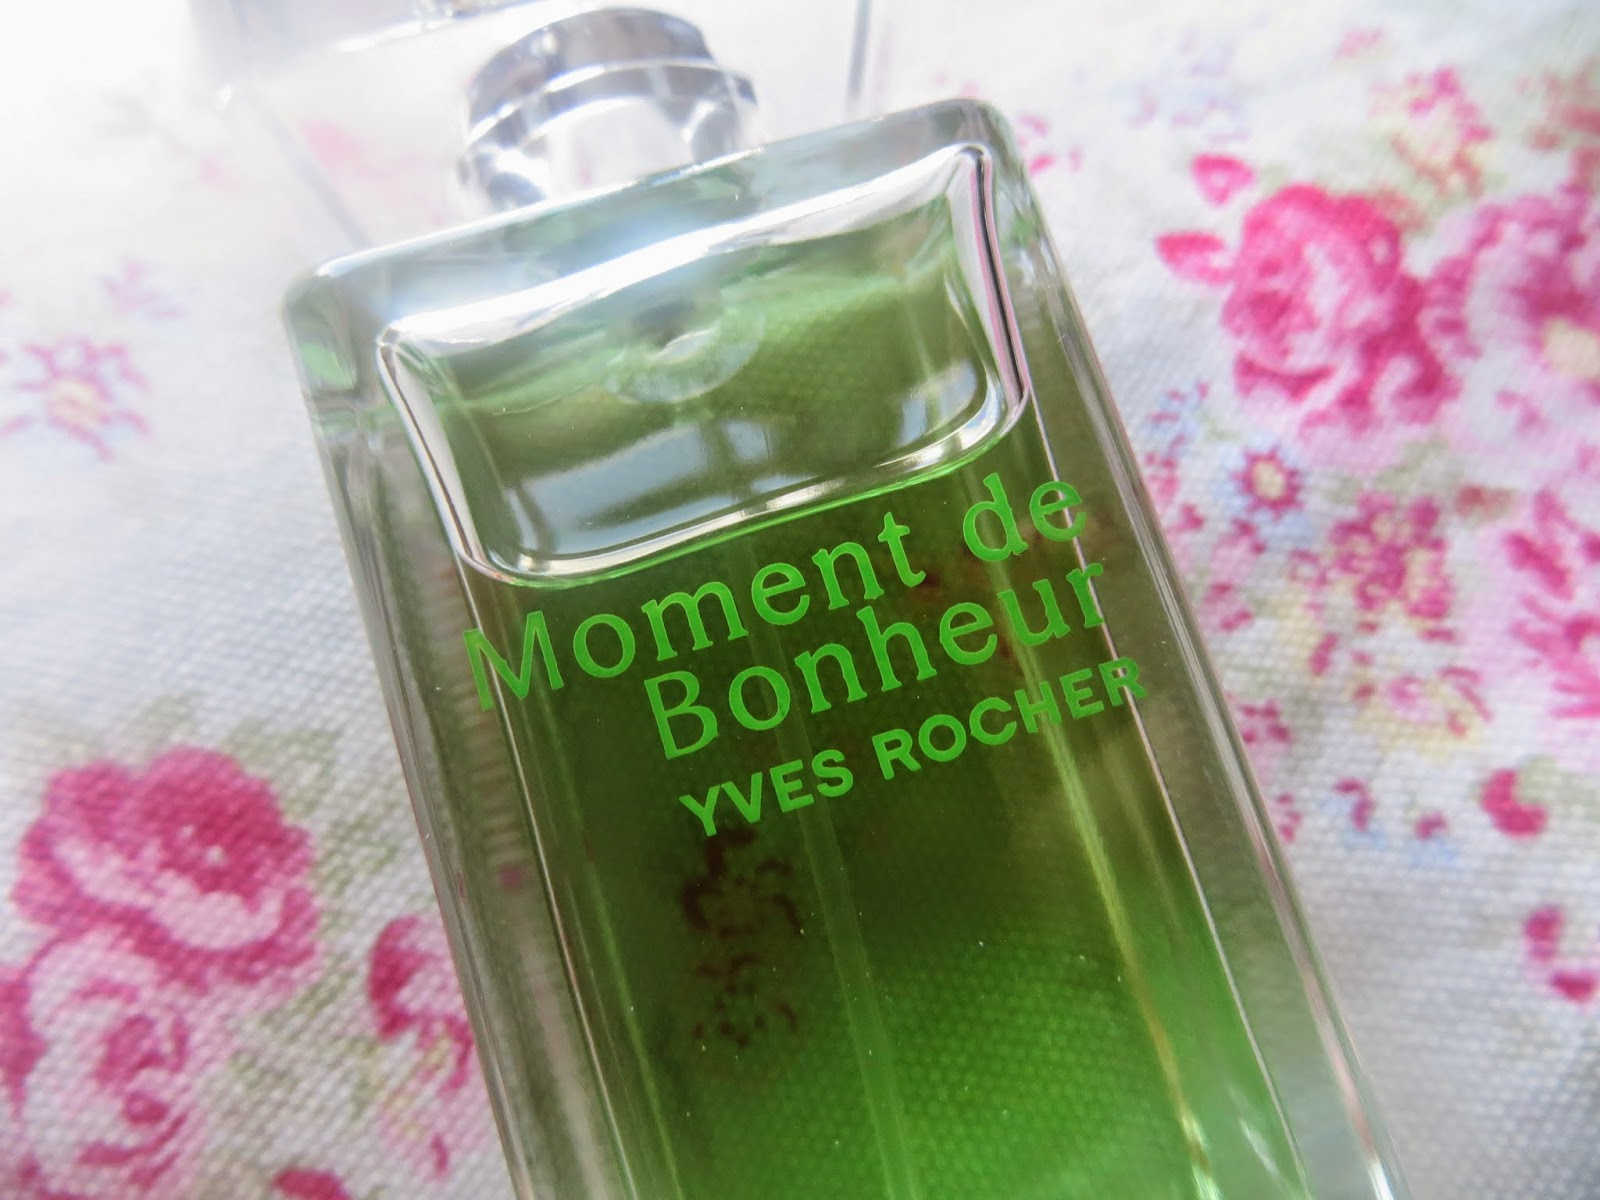 Review, Blogger, Yves rocher, perfume, apple perfume, rose perfume, pretty, summer, fresh smell, green, rose, beauty, makeup review, Baobella